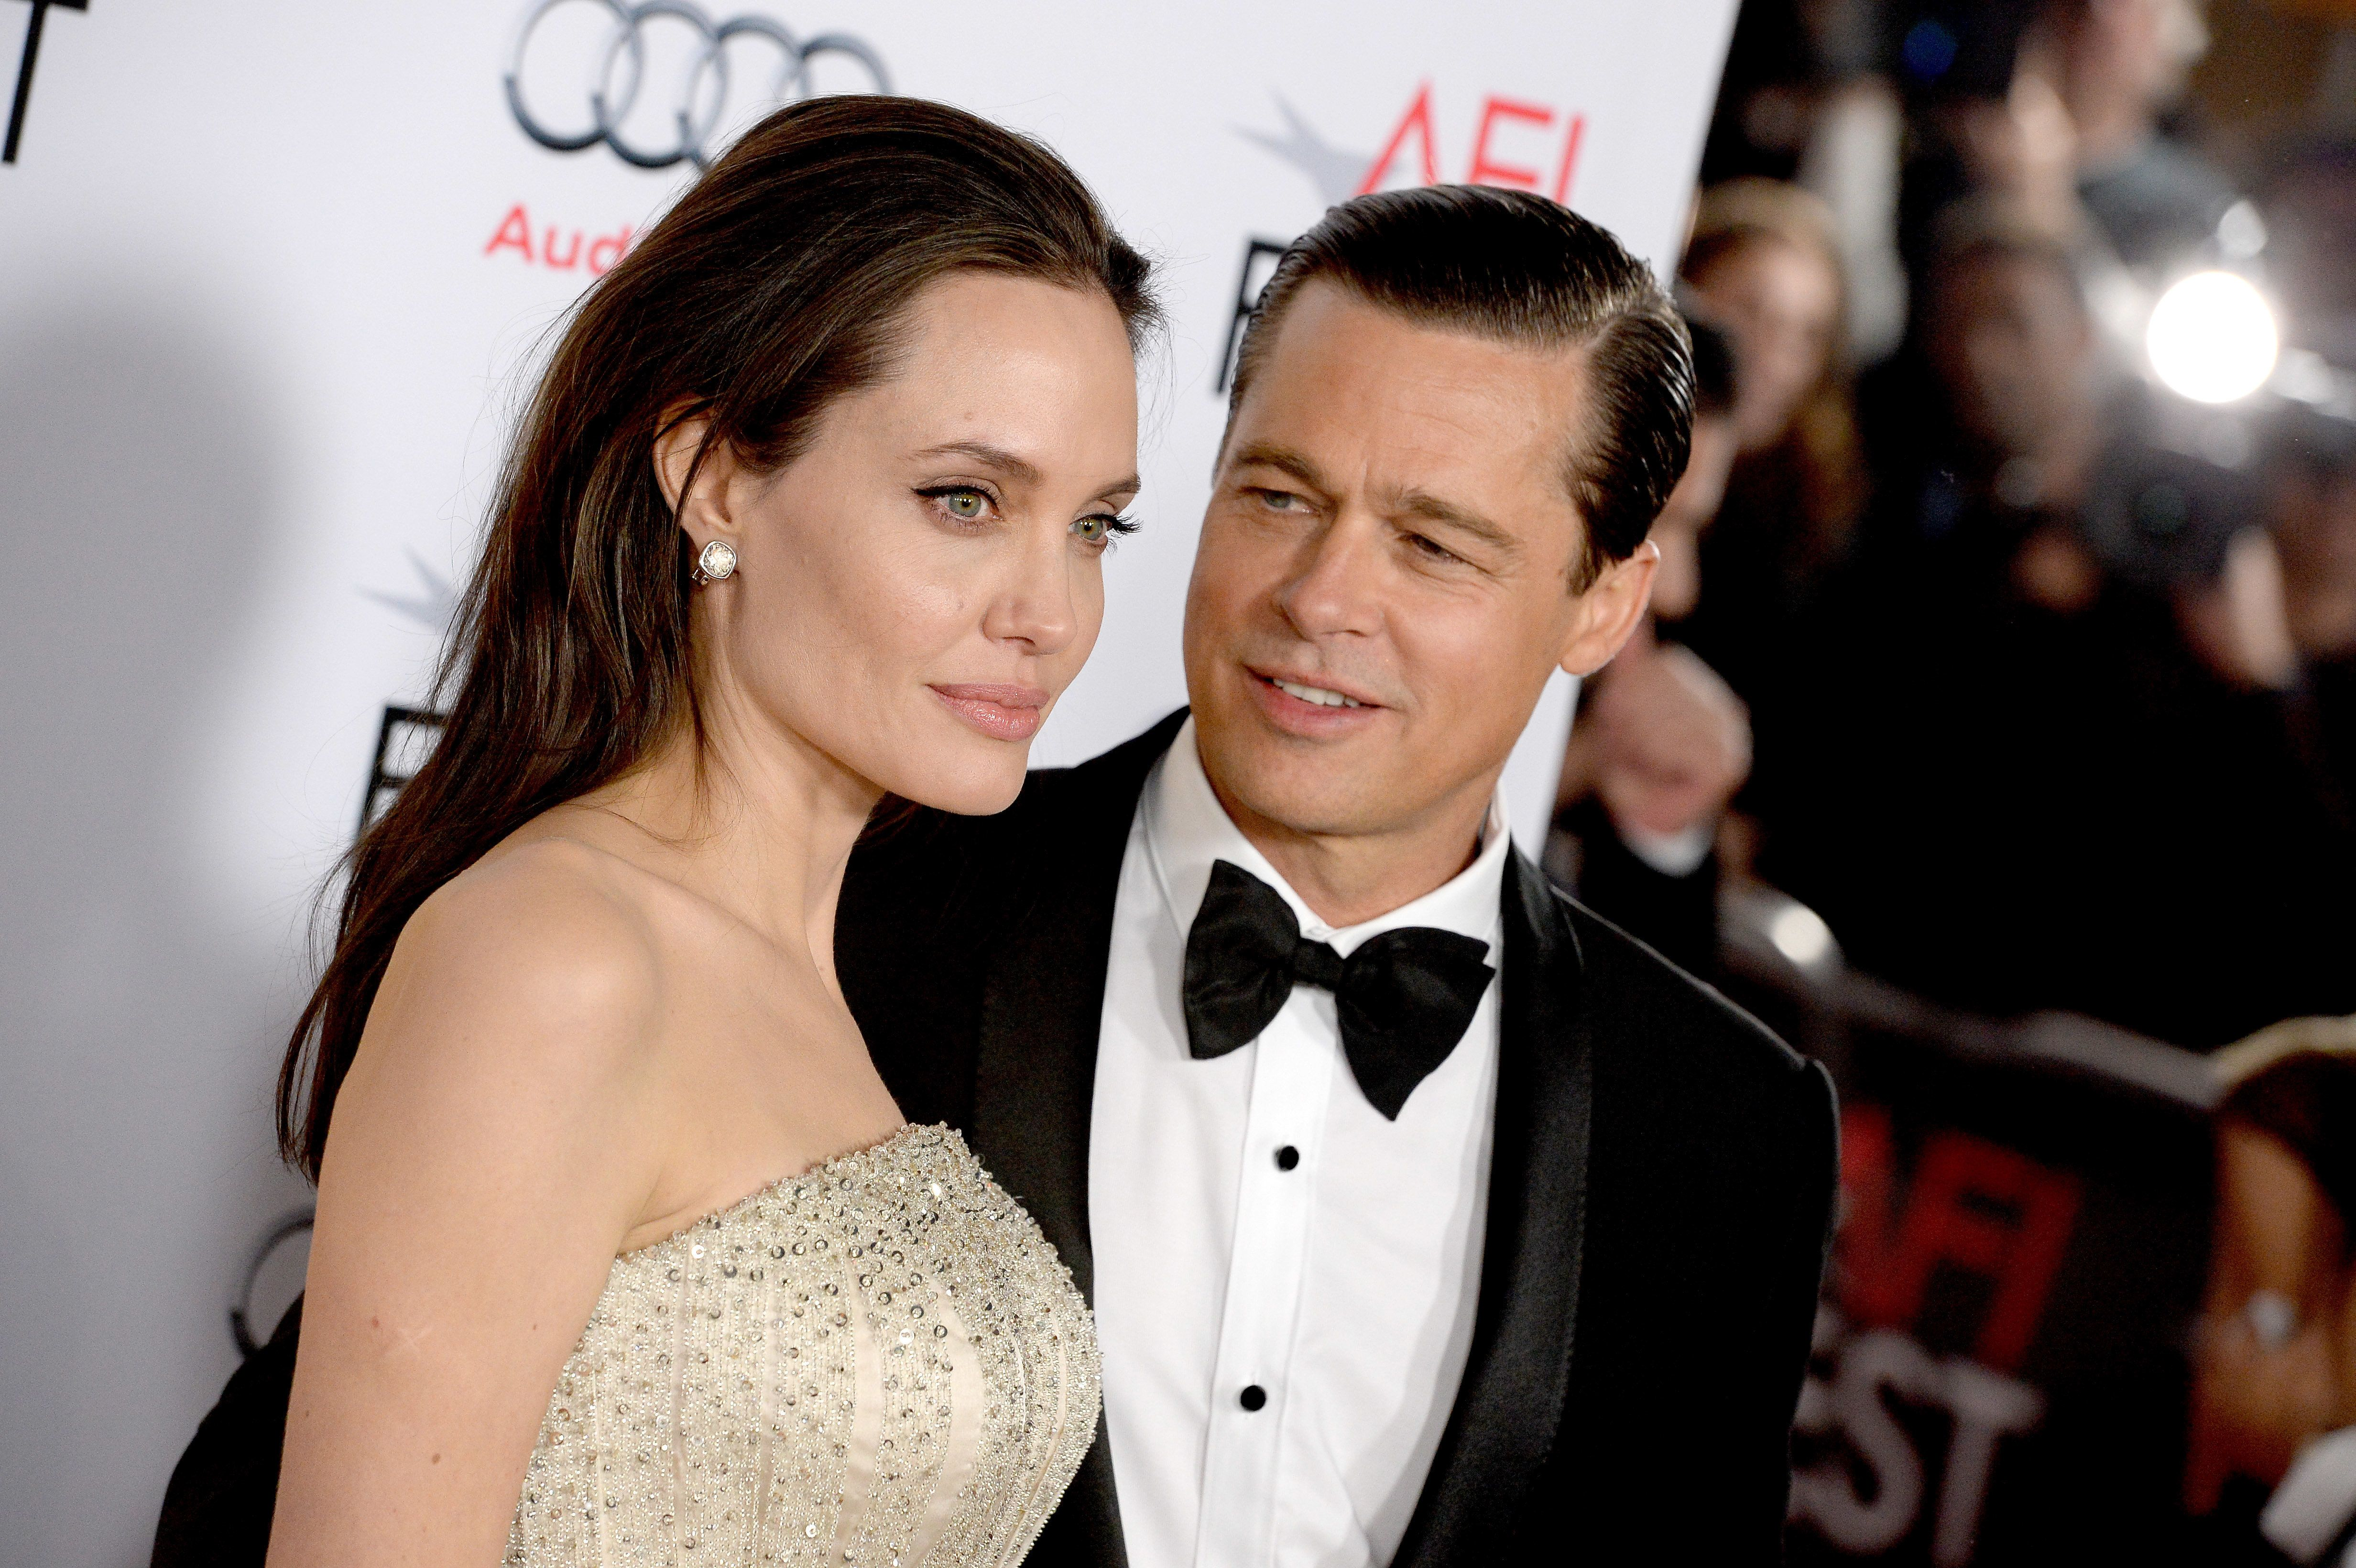 Angelina Jolie Pitt and Brad Pitt attend the AFI FEST 2015 opening Night Gala Premiere of Universal Pictures By The Sea at the TCL Chinese Theatre on November 15, 2015 in Los Angeles, CA, USA.